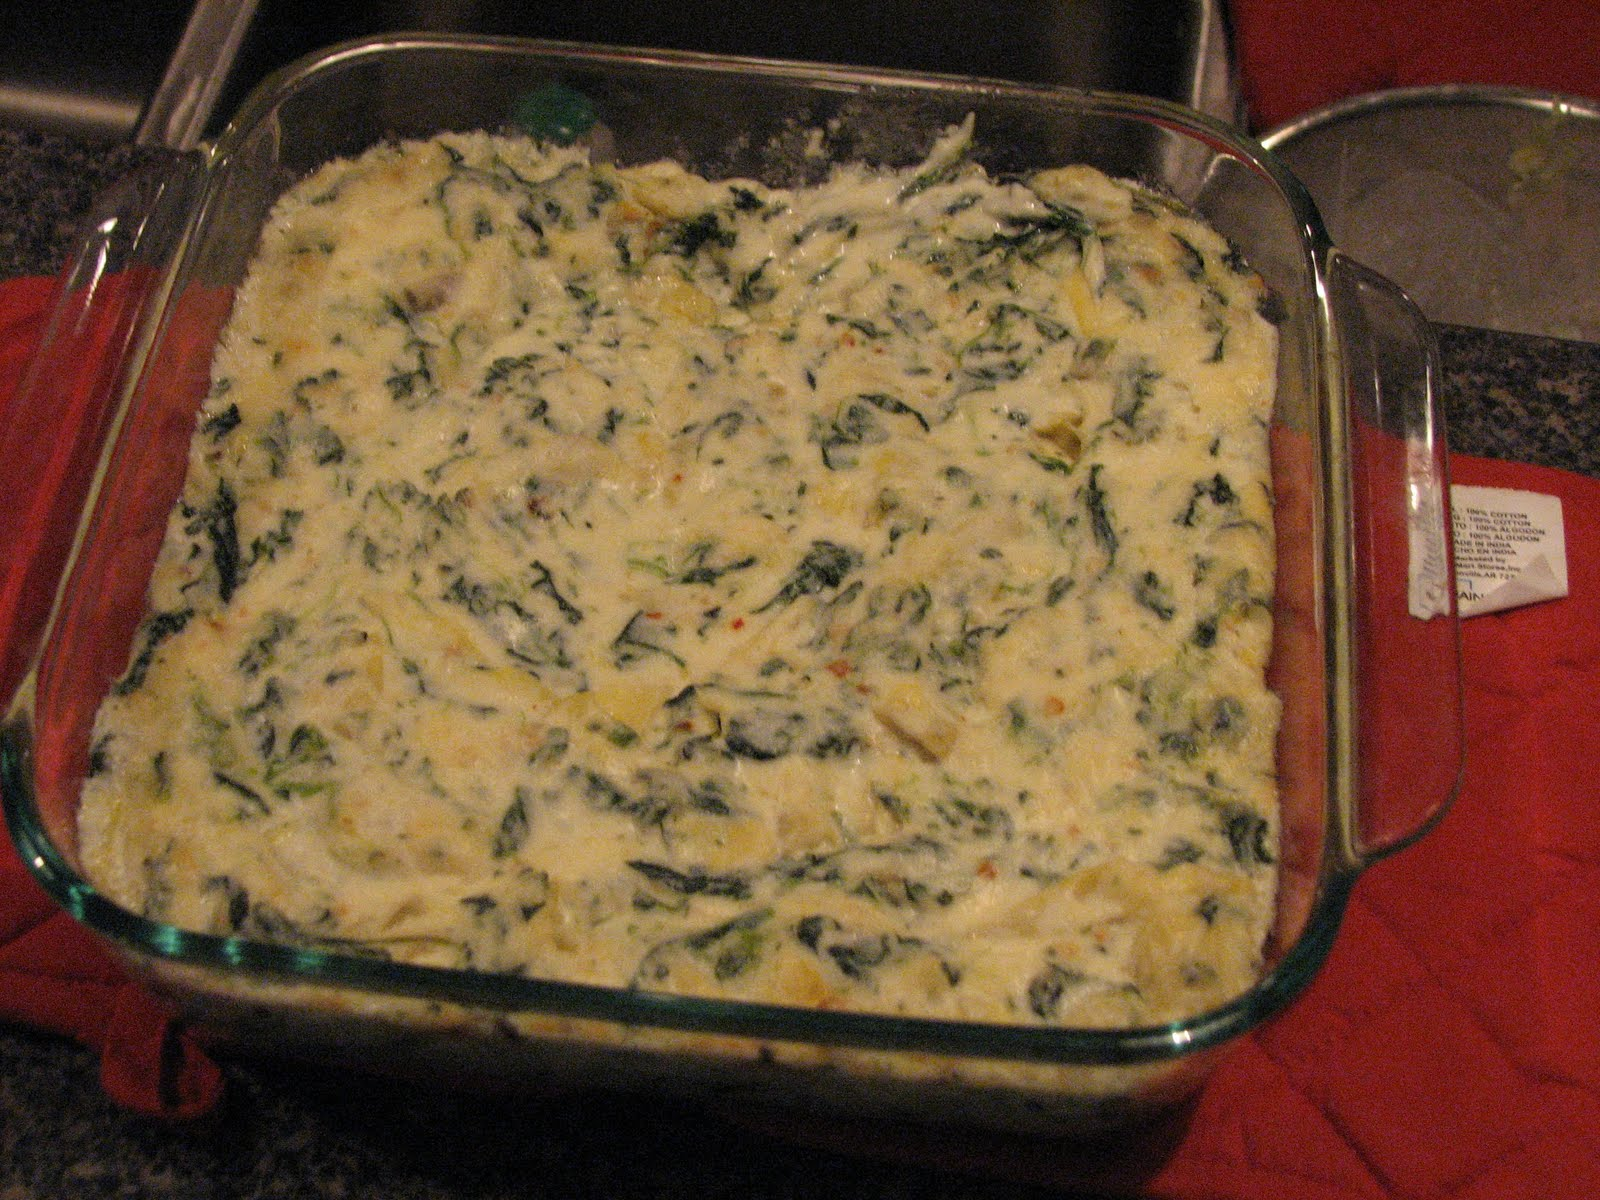 Hot+spinach+artichoke+dip+recipe+olive+garden